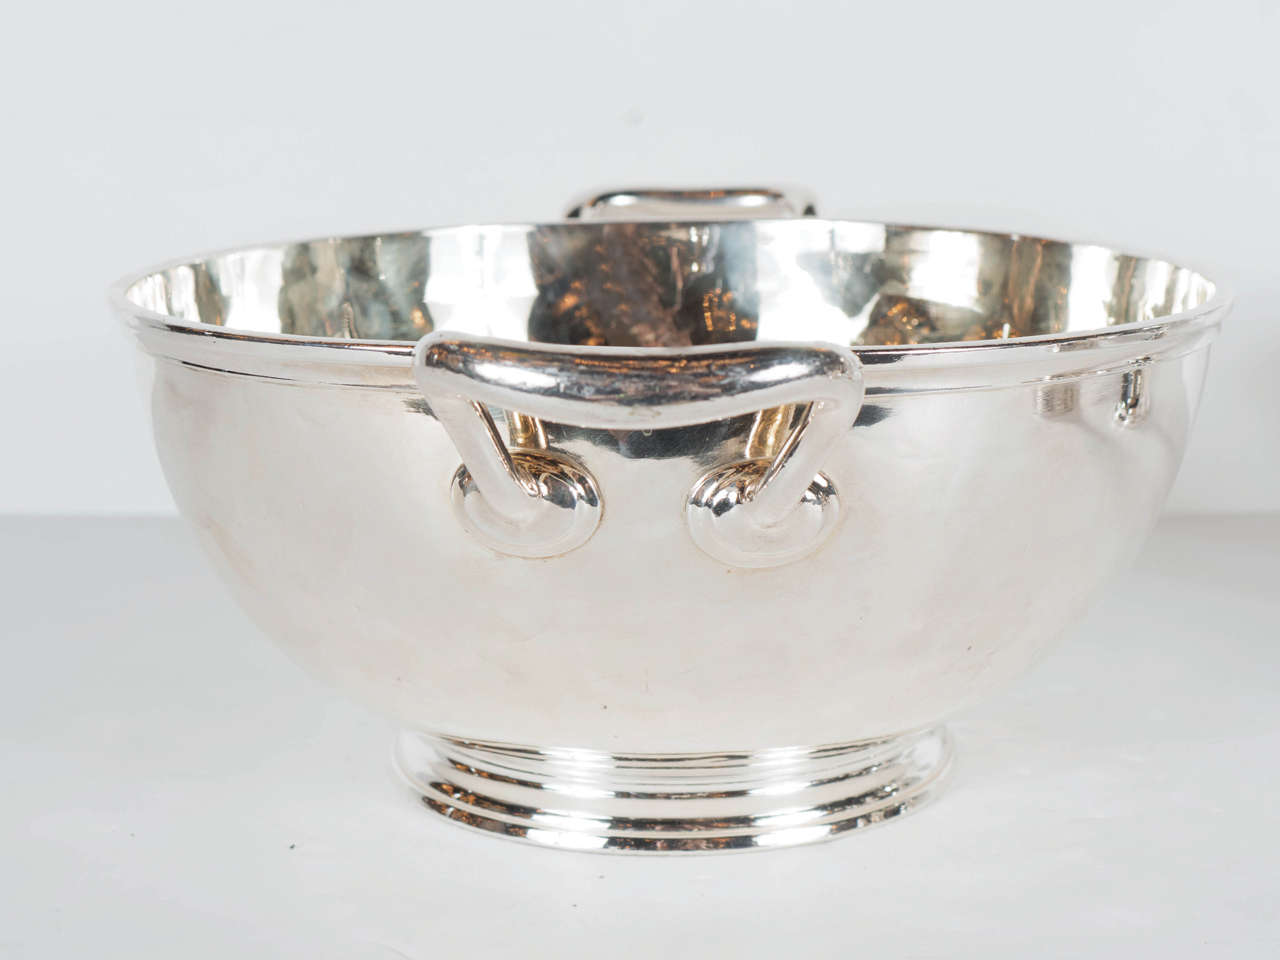 Gorgeous Art Deco Silver Plate and Gilt Bowl by Maison Christofle For Sale 2